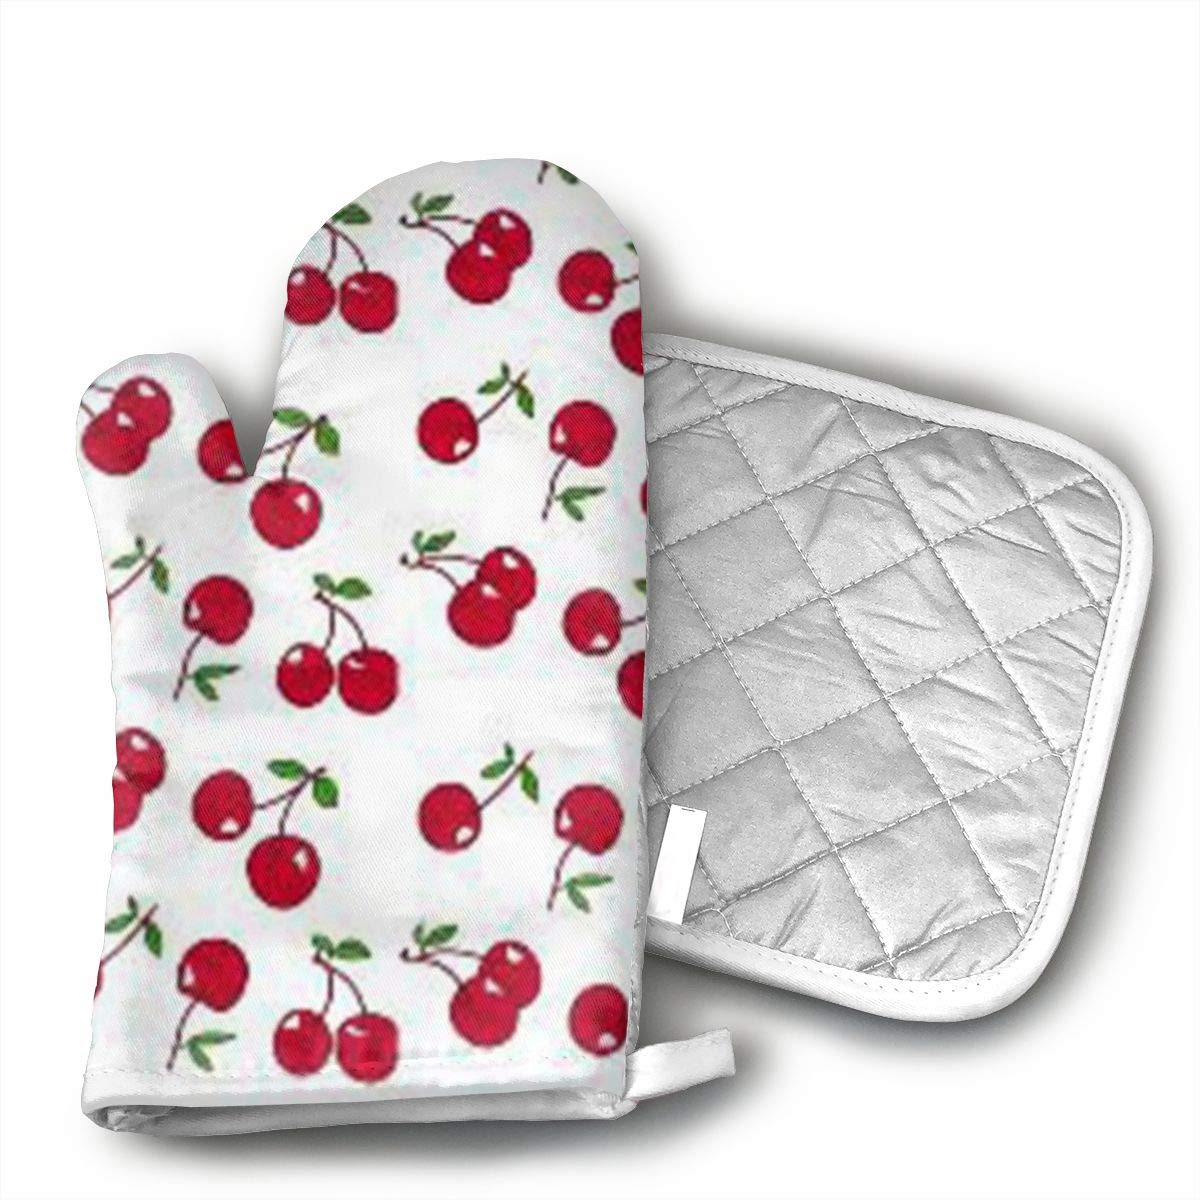 KEIOO Deep Red Cherry Pattern Oven Mitts and Potholders Heat Resistant Set of 2 Kitchen Set Non-Slip Grip Oven Gloves BBQ Cooking Baking Grilling